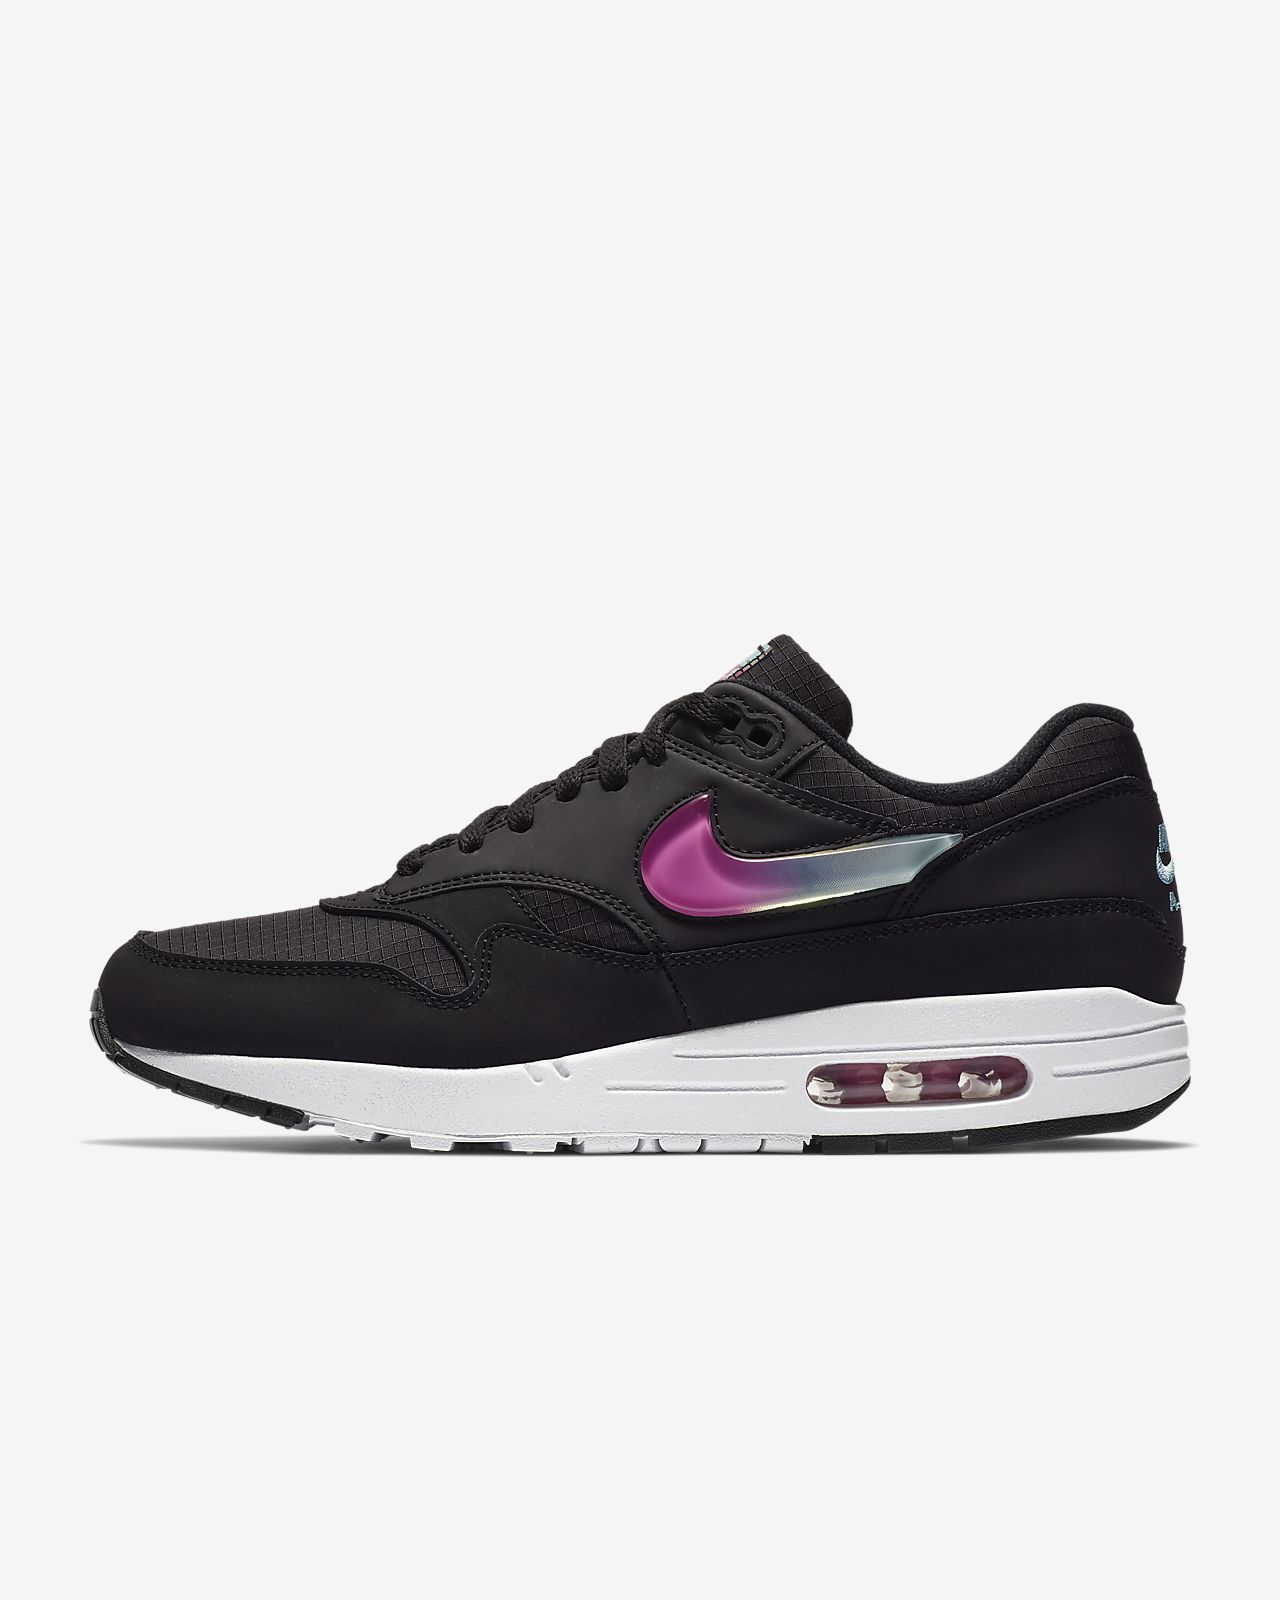 sale retailer cde2b a641d ... Nike Air Max 1 SE Men s Shoe